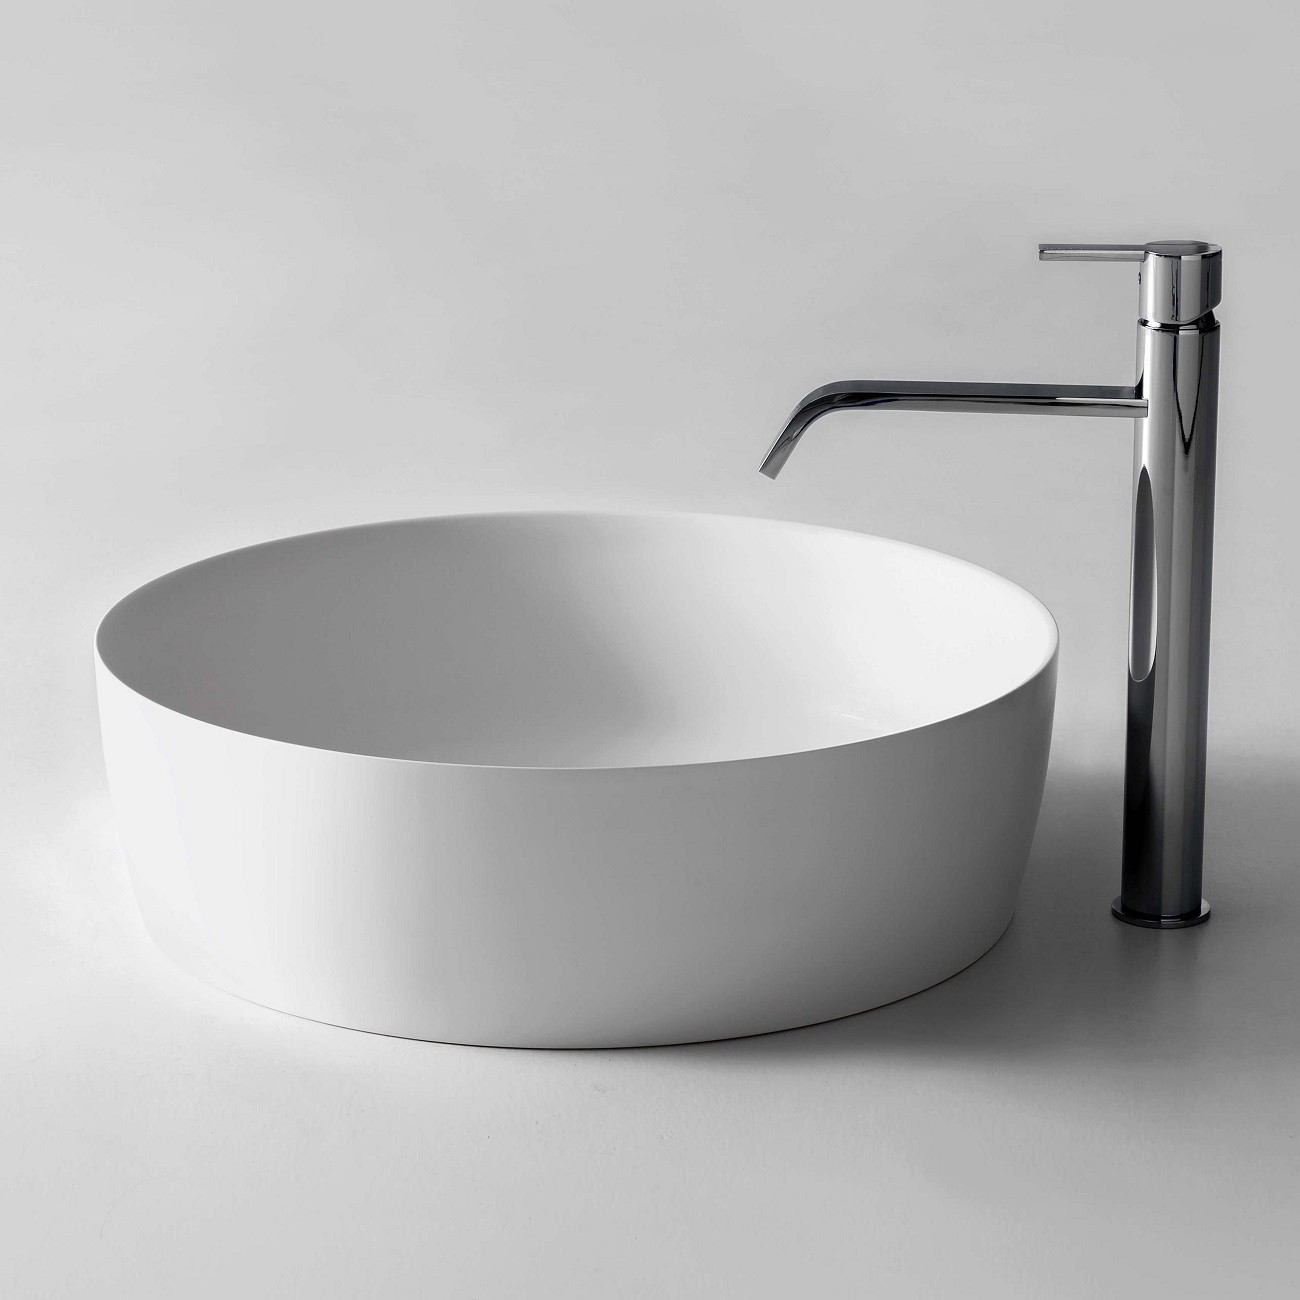 Lavabo Semincasso Con Mobile https://www.tattahome/it/ 1.0 weekly https://www